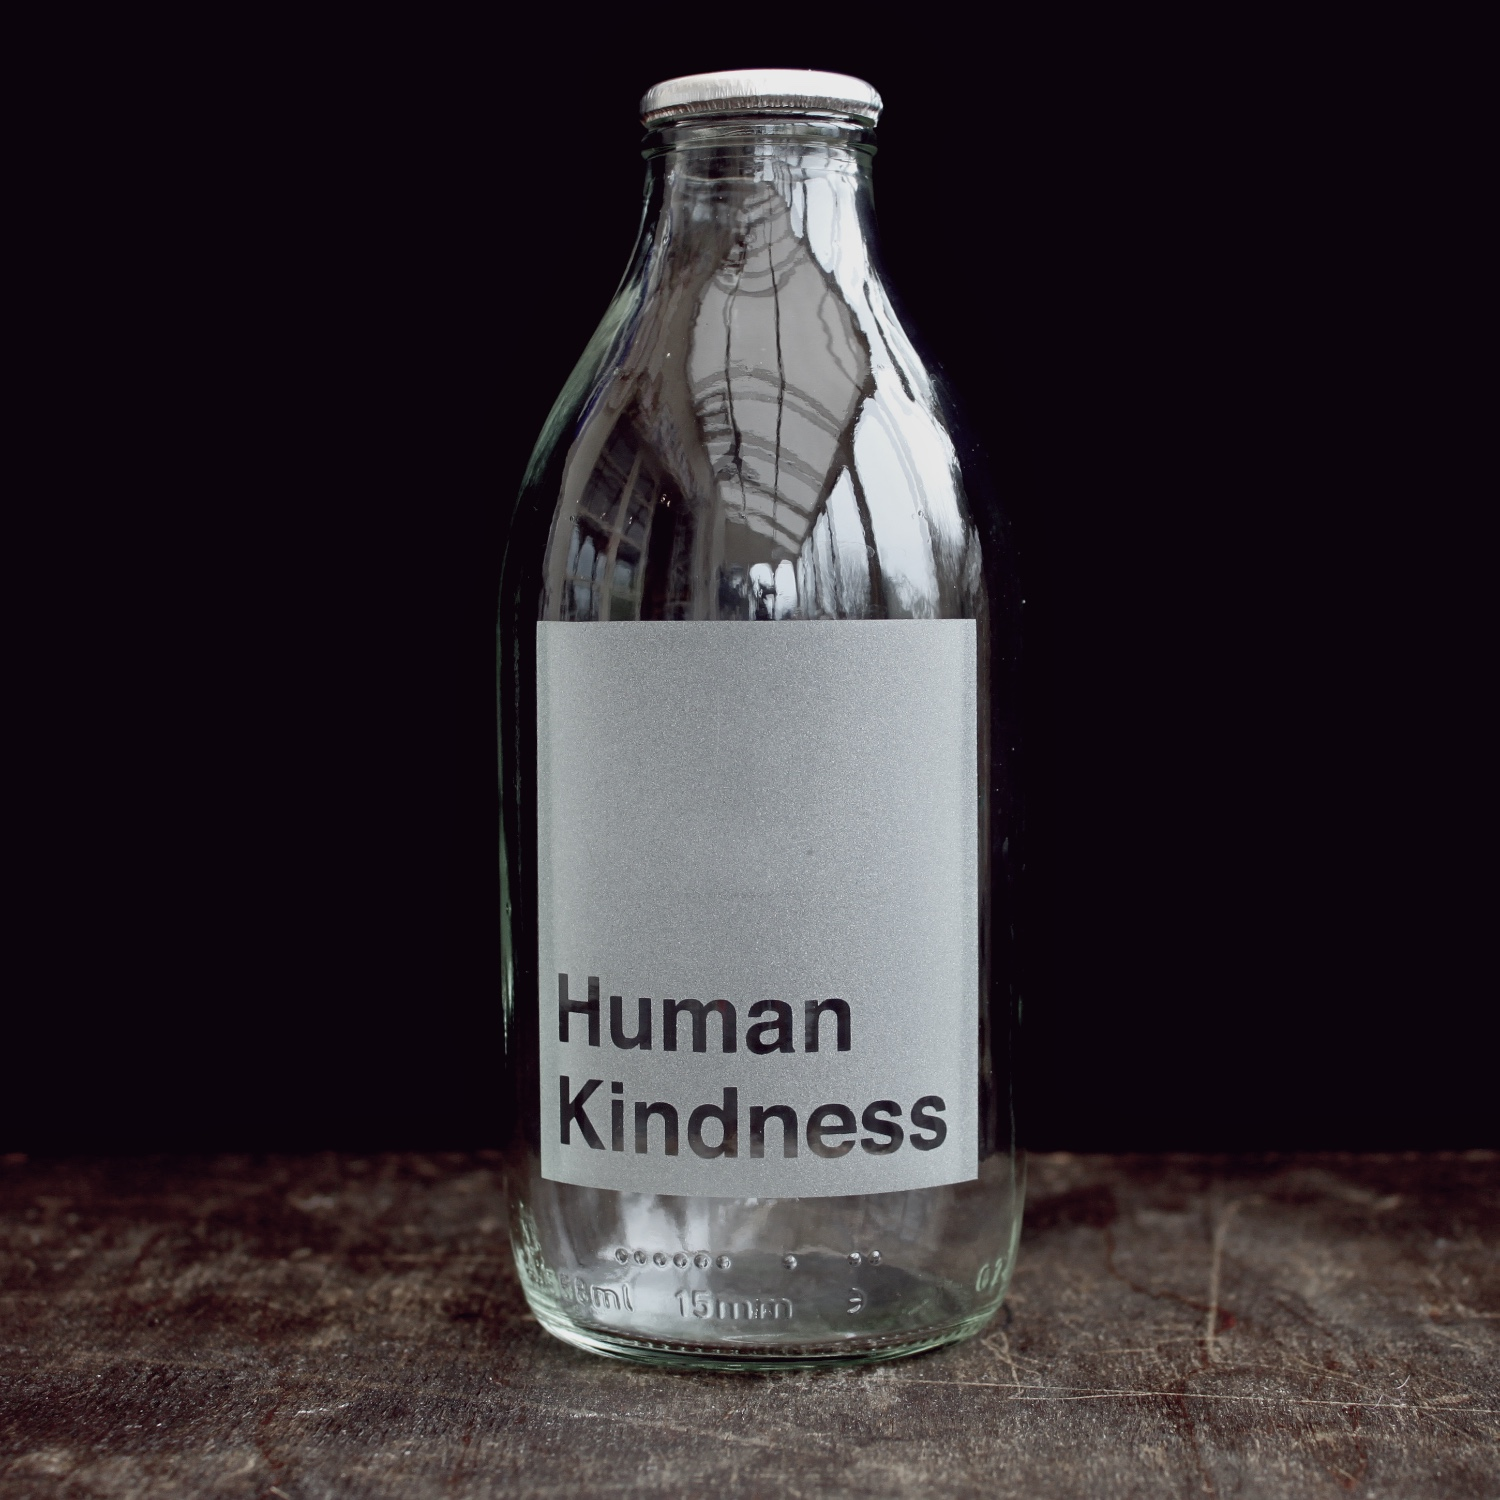 human-kindness-etched-milk-bottle-vinegar-and-brown-paper.jpg